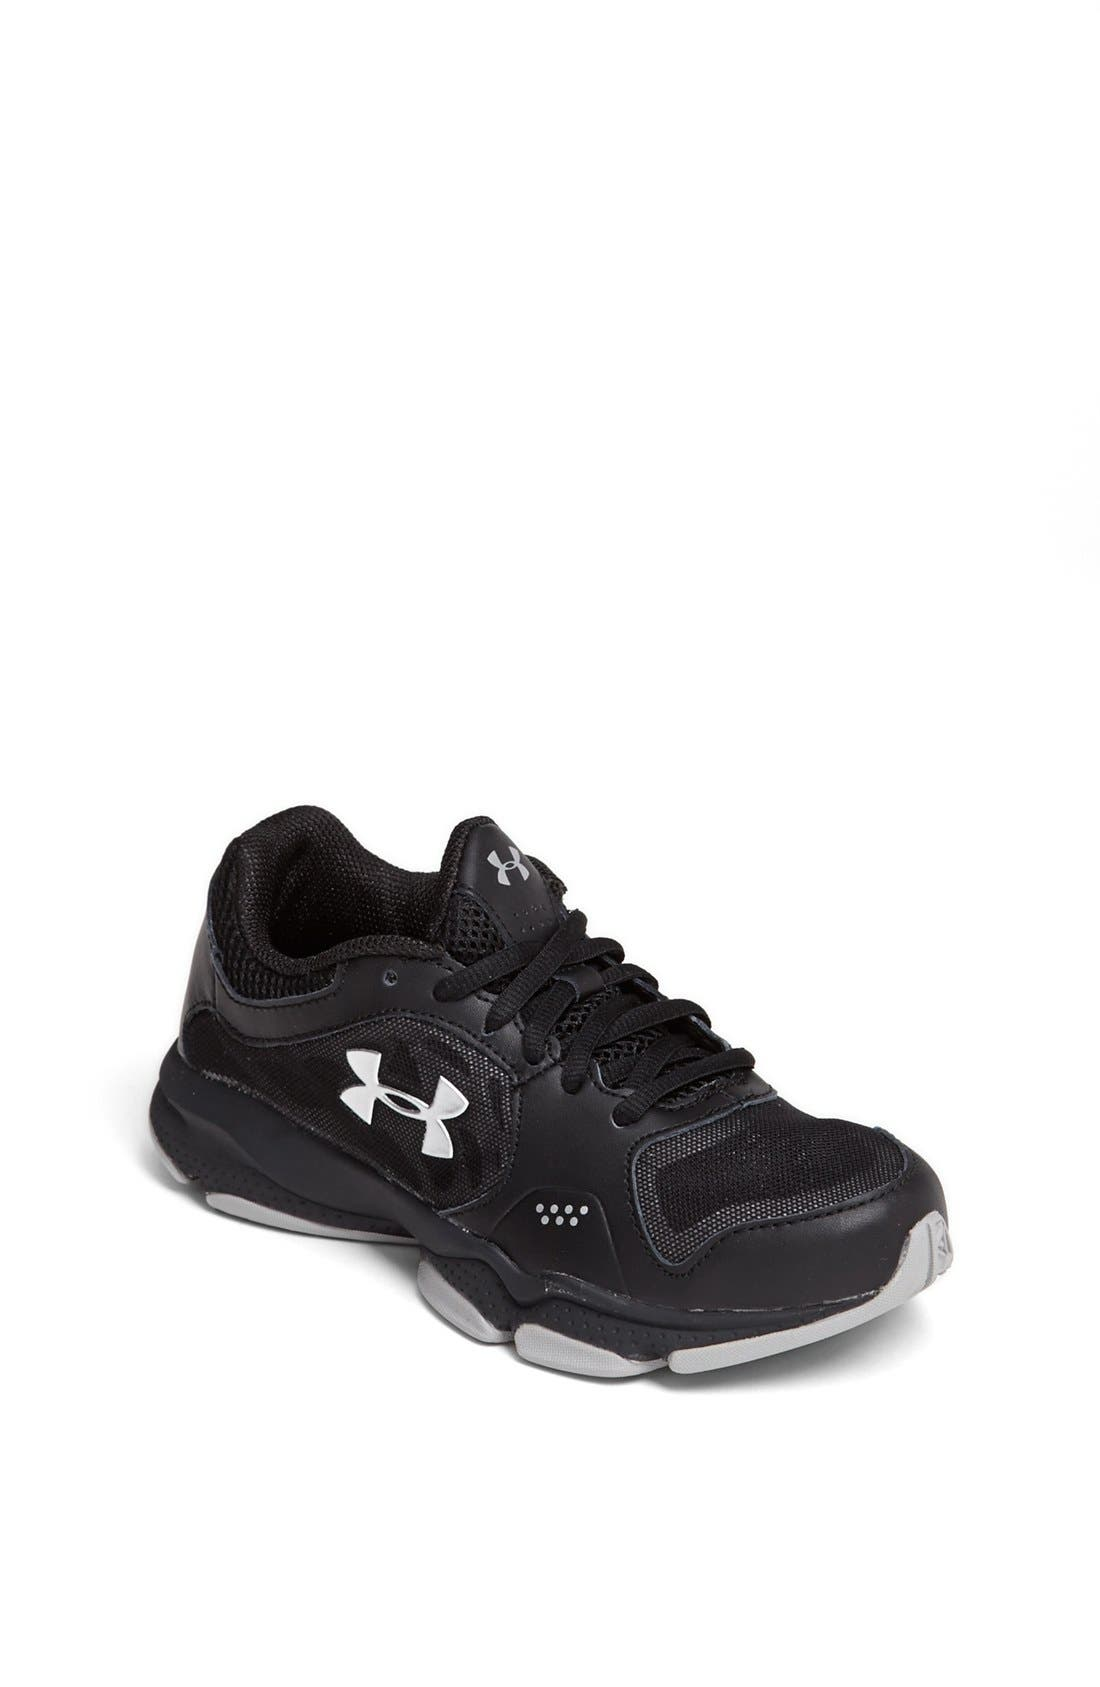 Alternate Image 1 Selected - Under Armour 'Micro G® Pulse' Training Shoe (Toddler, Little Kid & Big Kid)